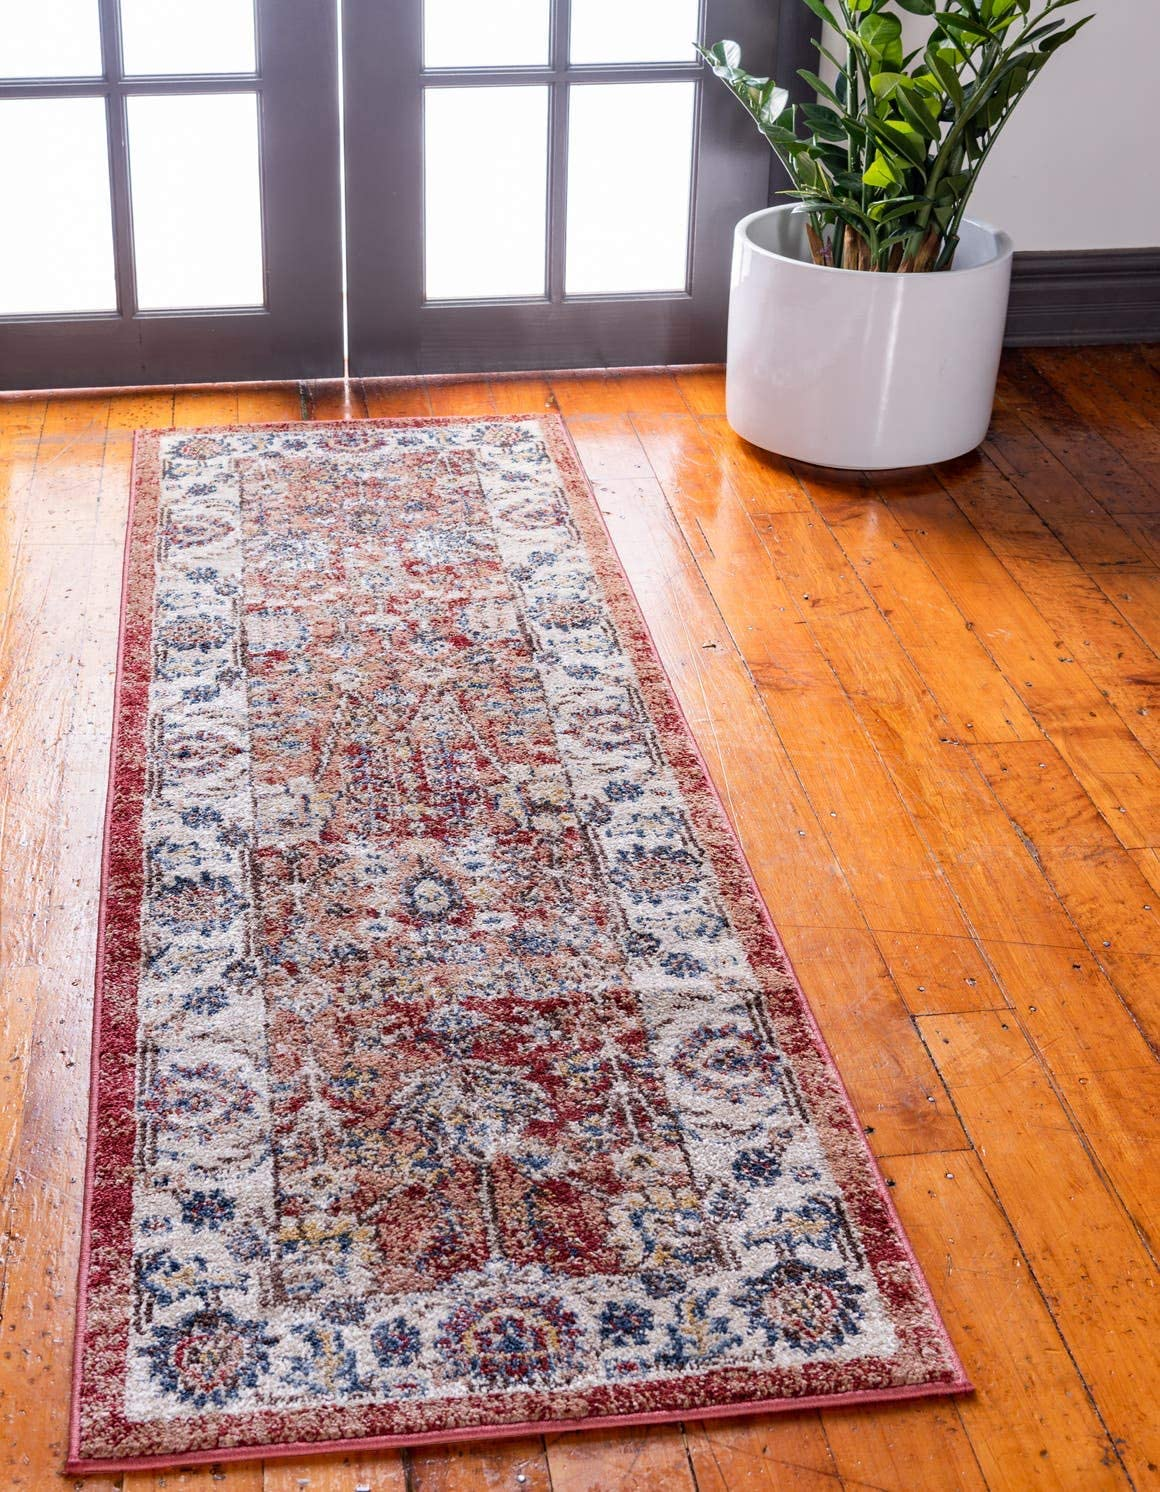 Unique Loom Utopia Collection Traditional Botanical Vintage Warm Tones Terracotta Runner Rug 2 0 x 6 0